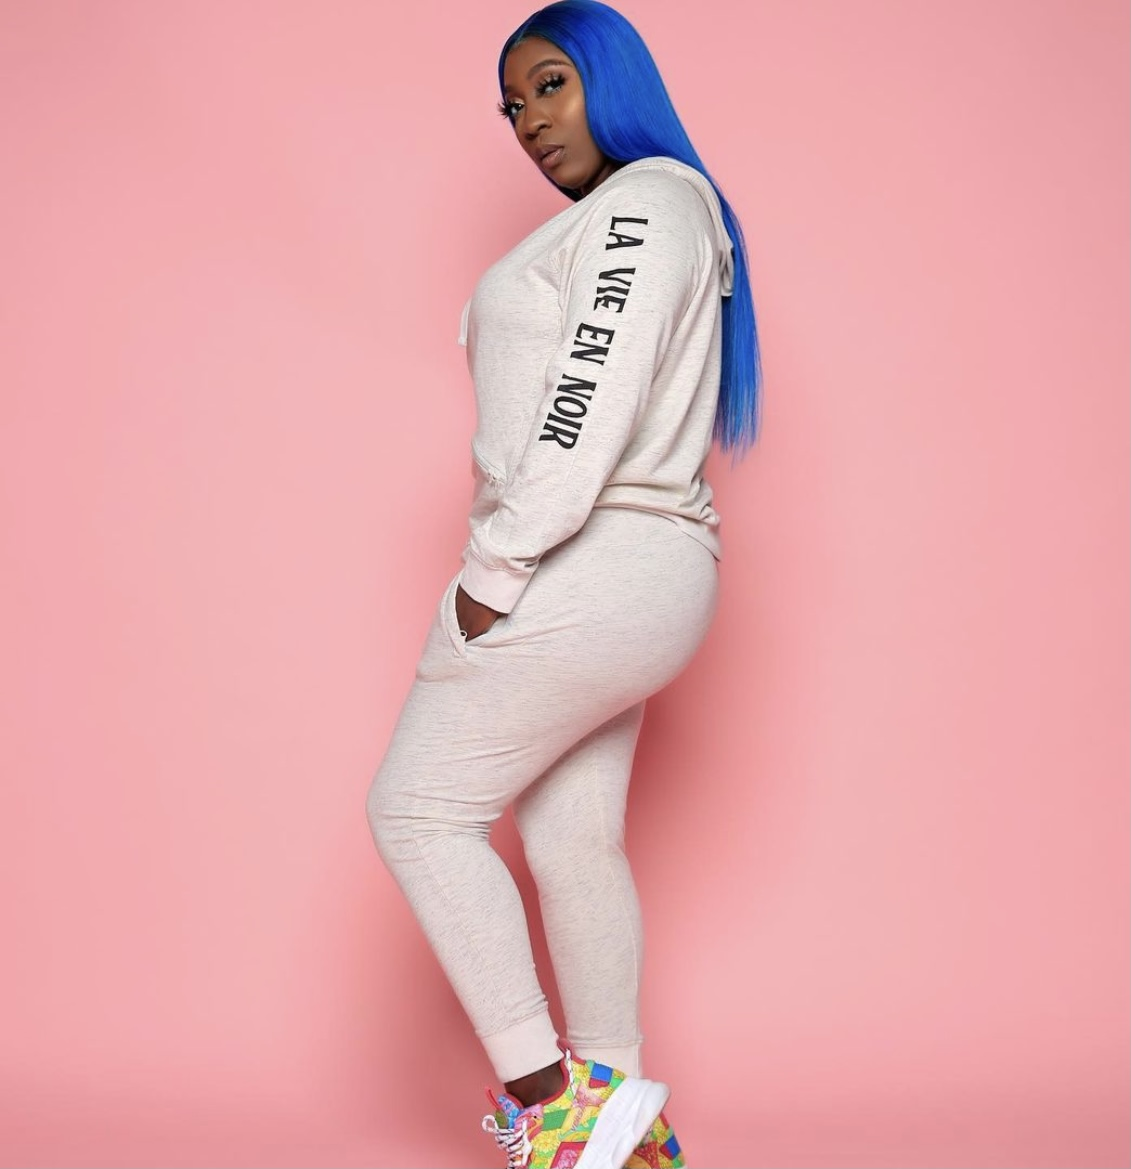 EXCLUSIVE: Reality TV Star & DanceHall Artist Spice Launches New Athleisure  Line - theJasmineBRAND